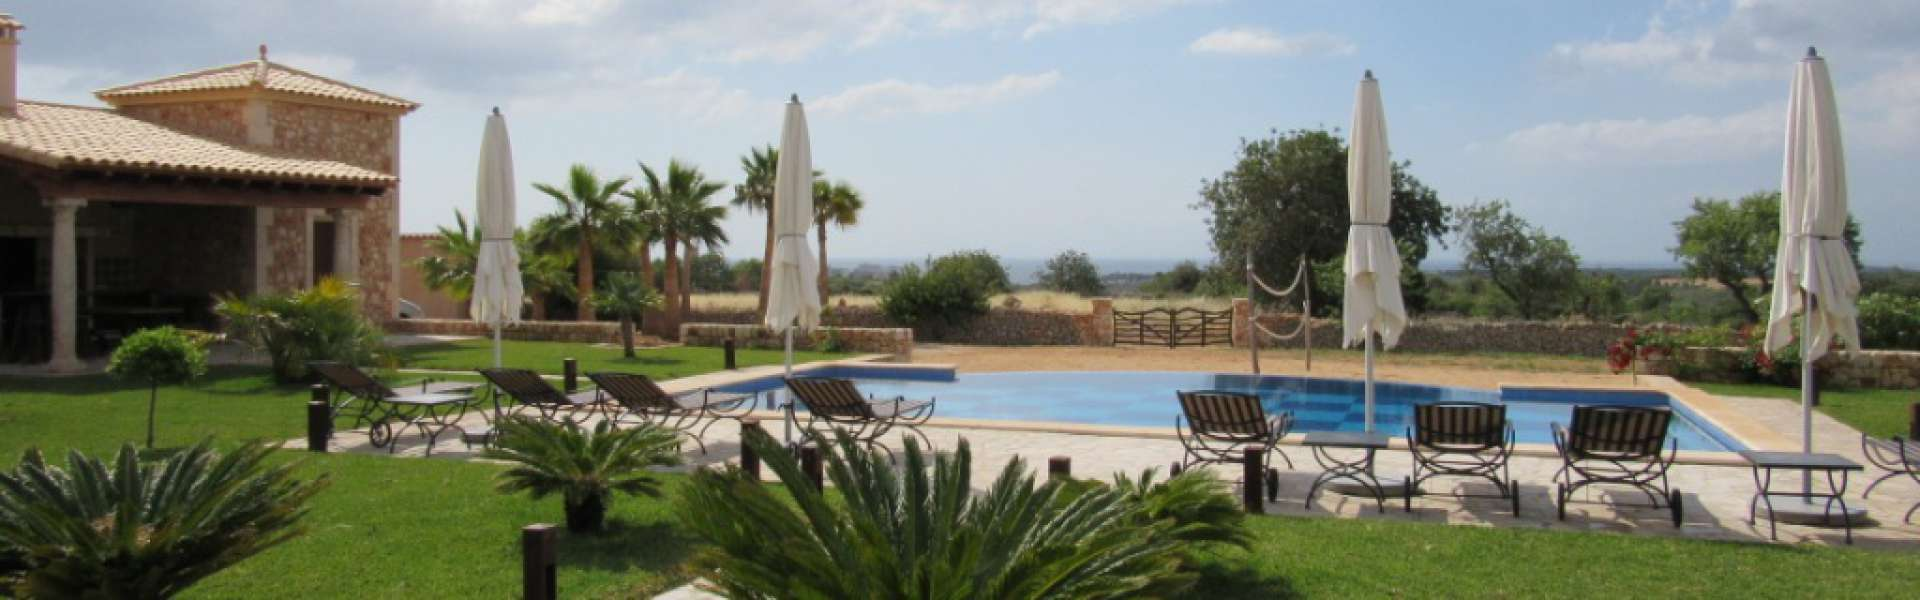 Porto Colom - Spacious Finca close to Calas de Mallorca for sale